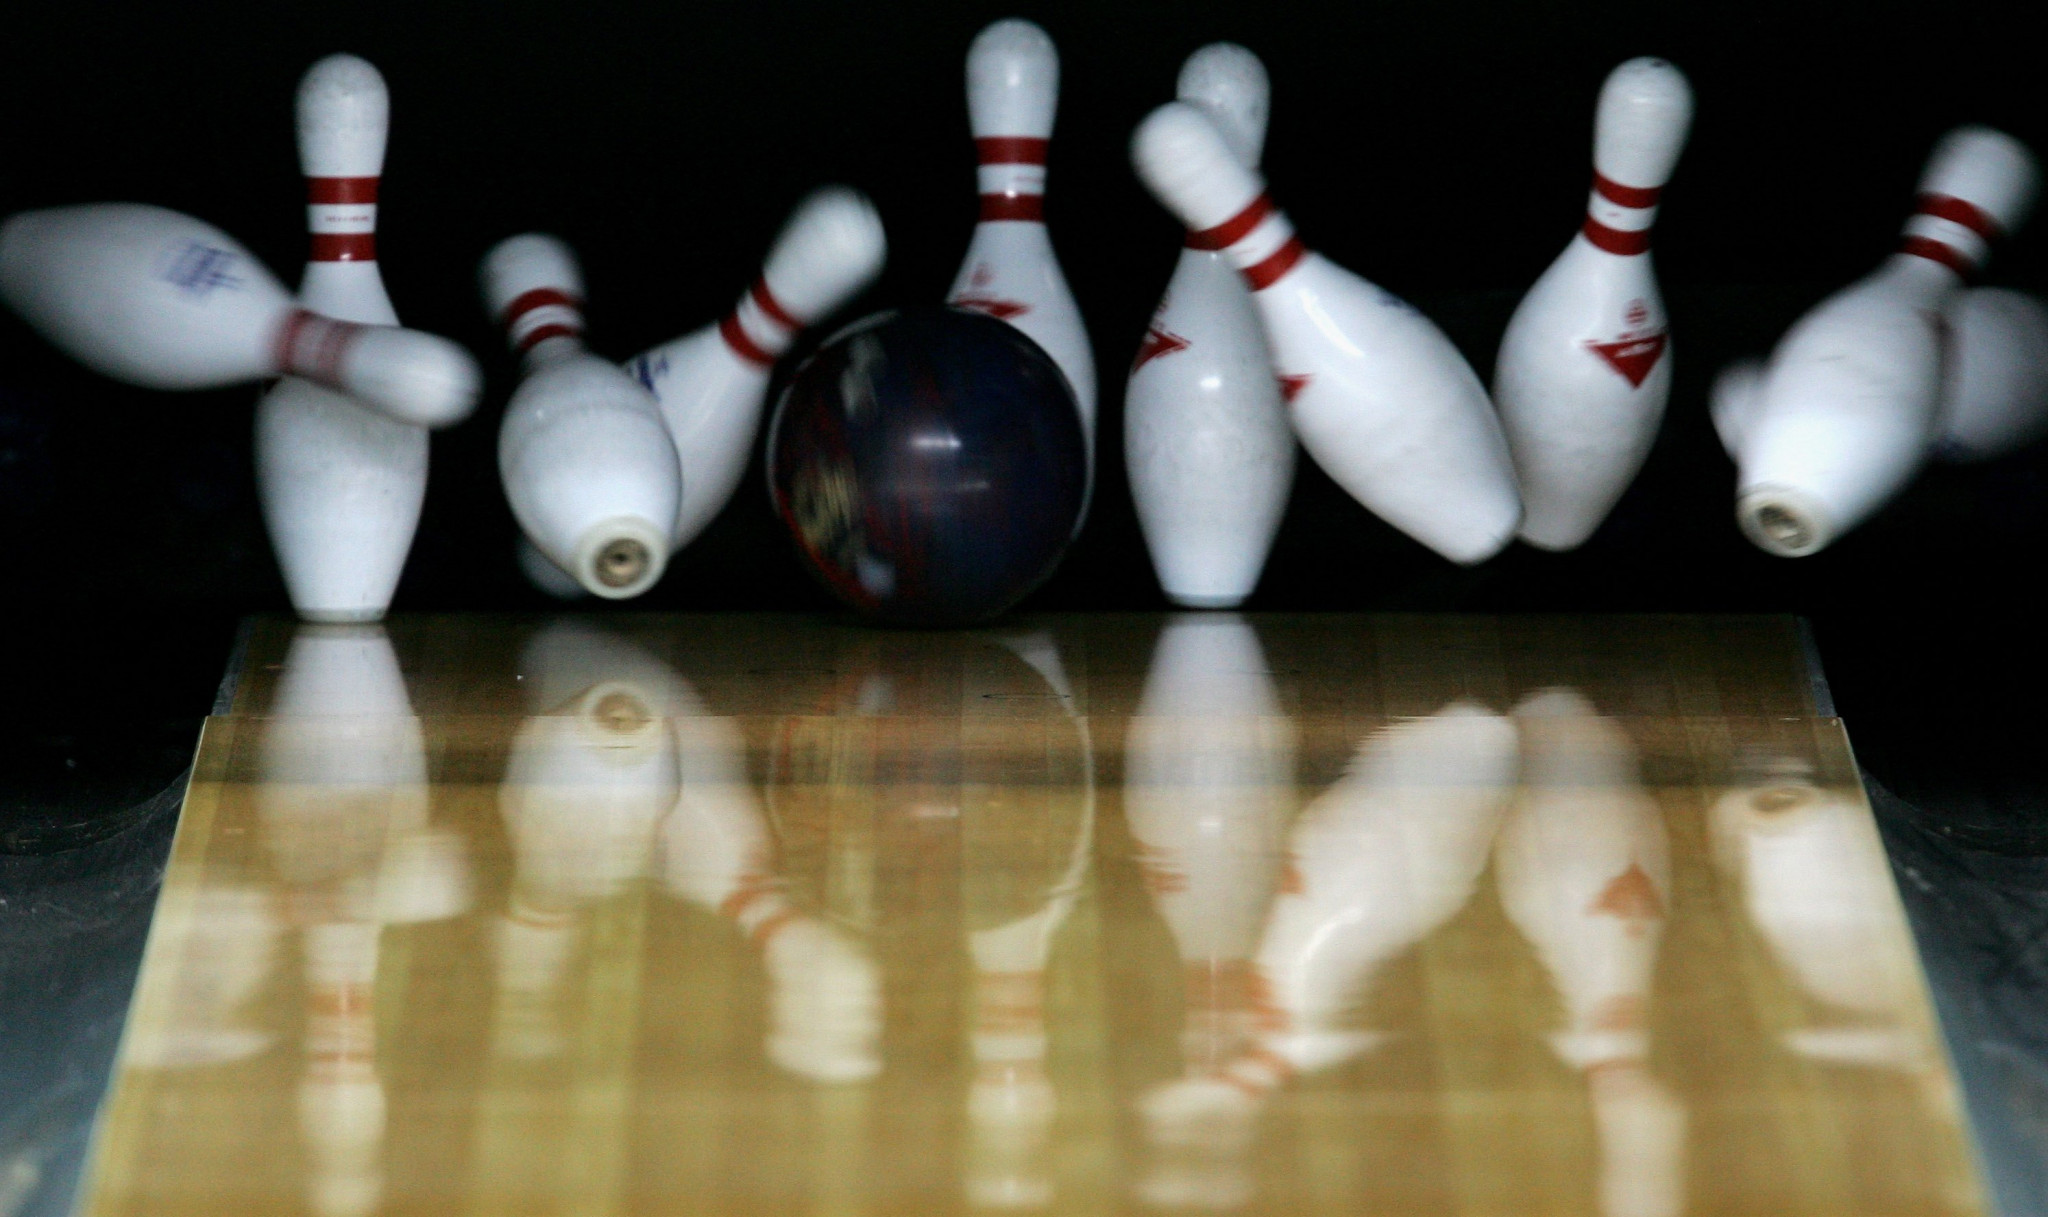 World Bowling has teamed up with YBVR ©World Bowling